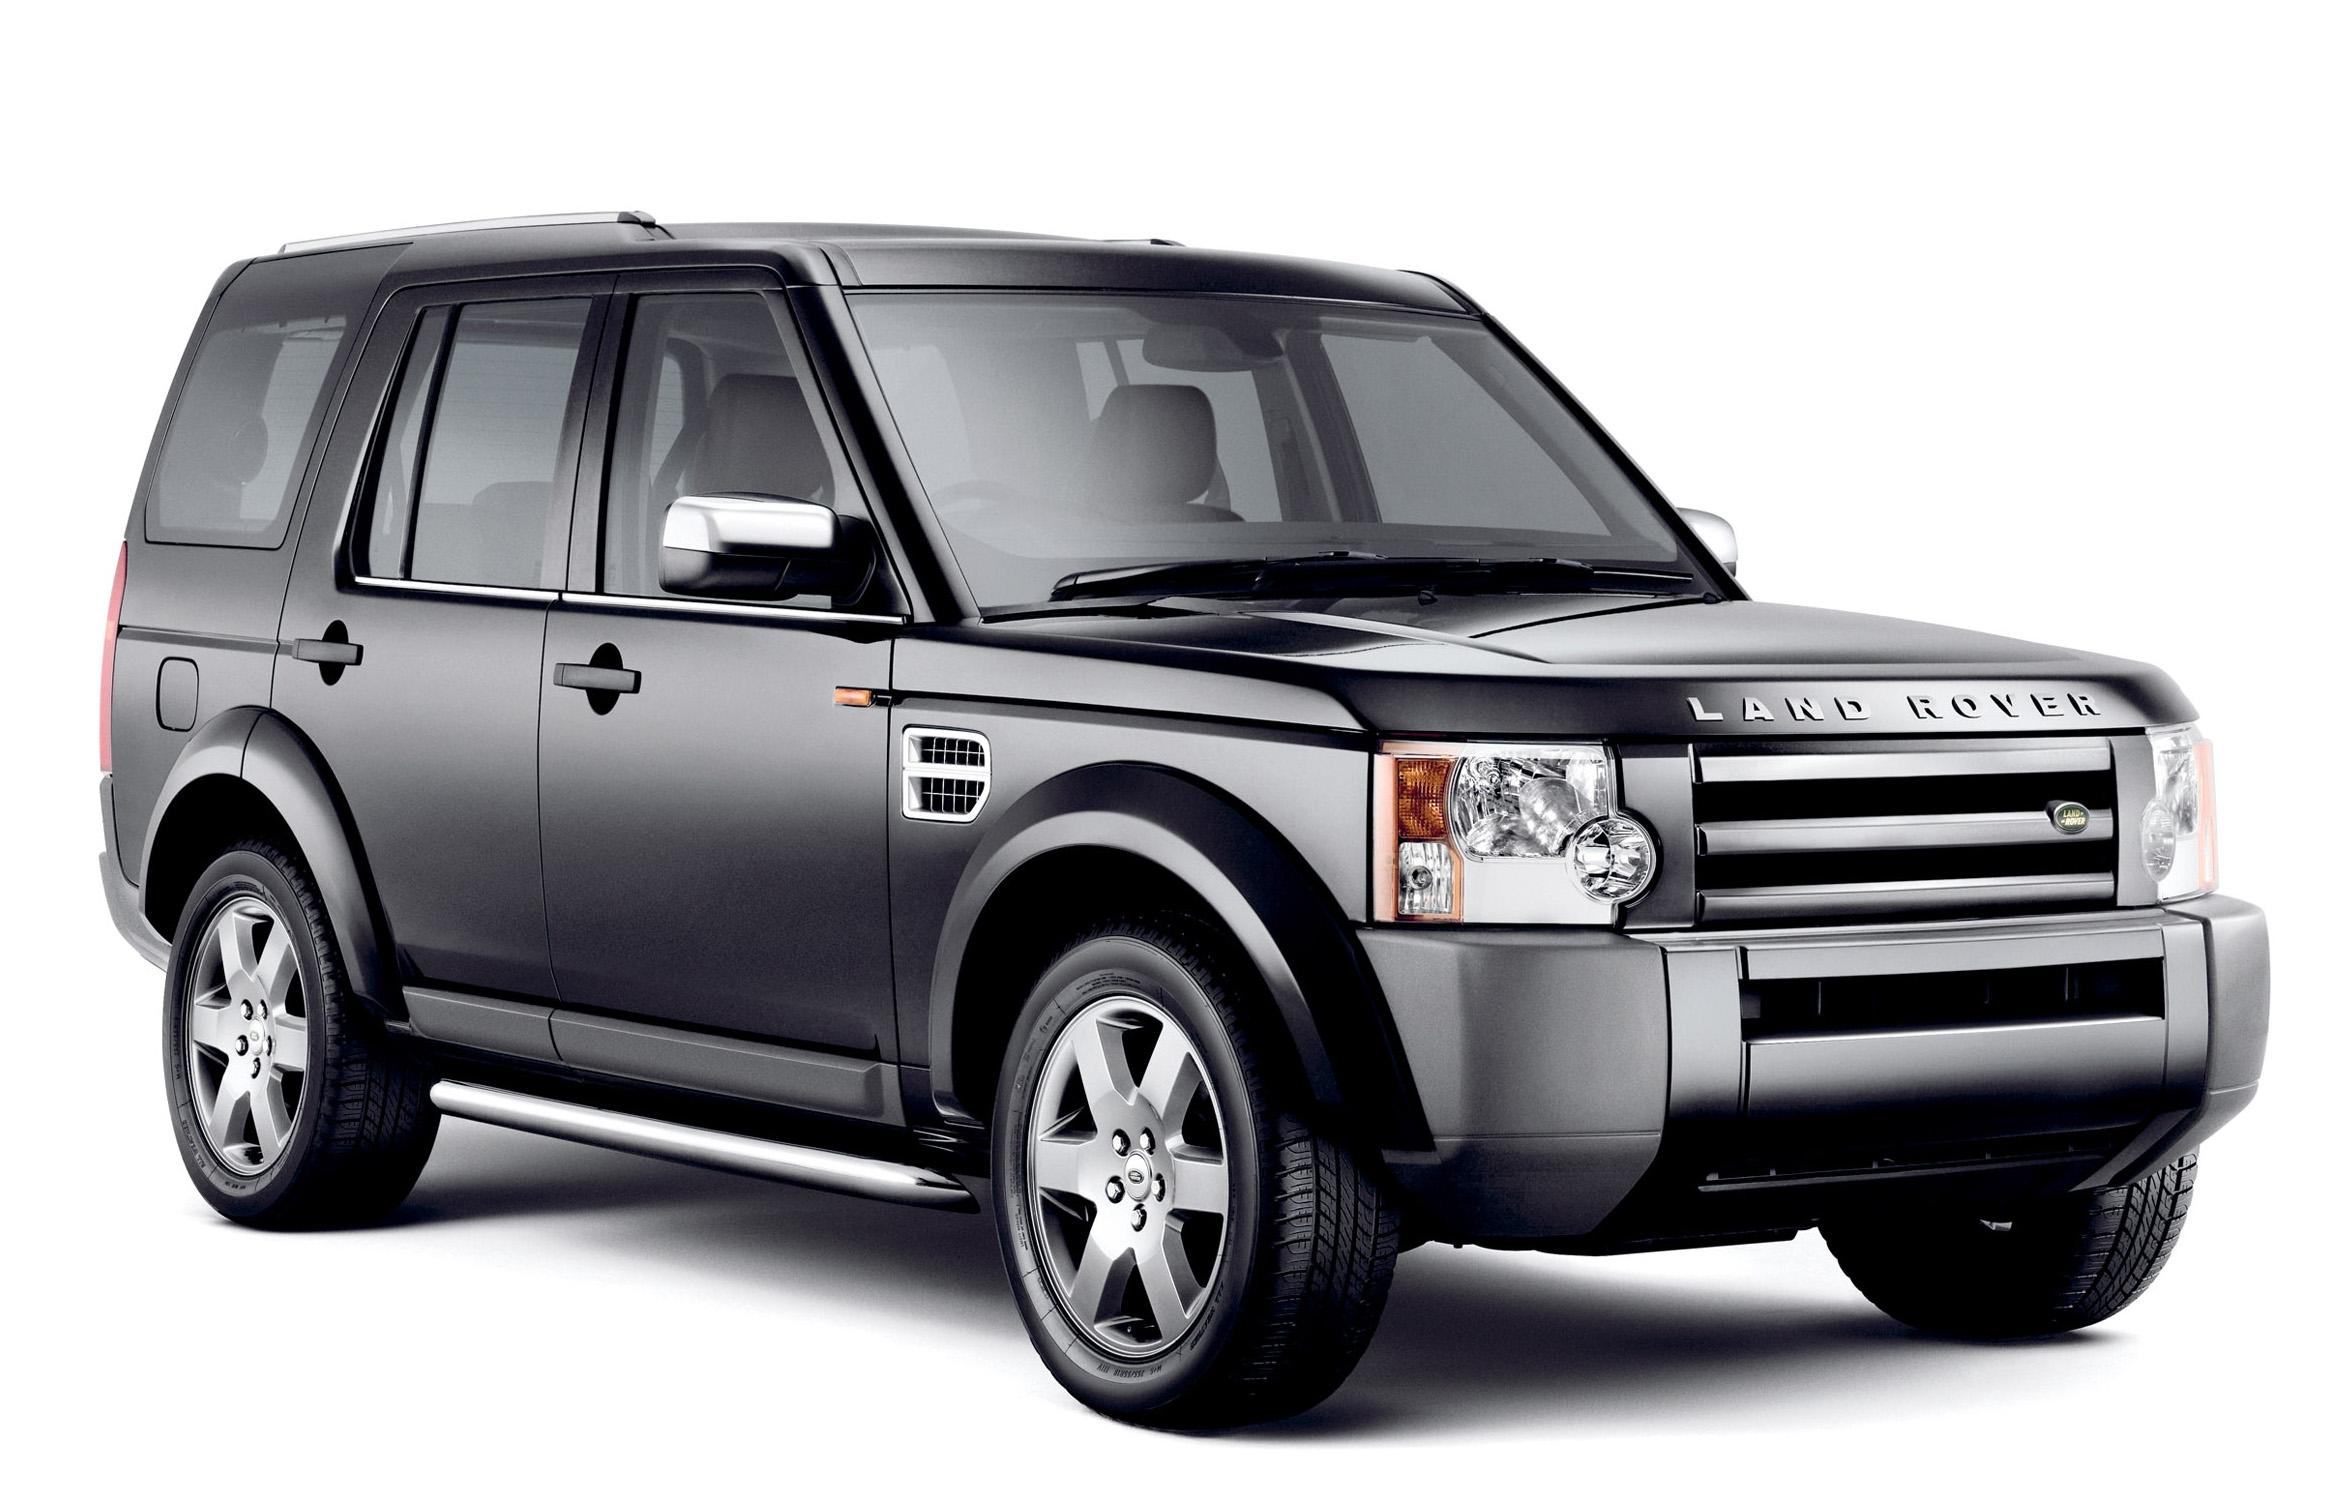 2007 Land Rover Discovery 3 Pursuit | Top Sd